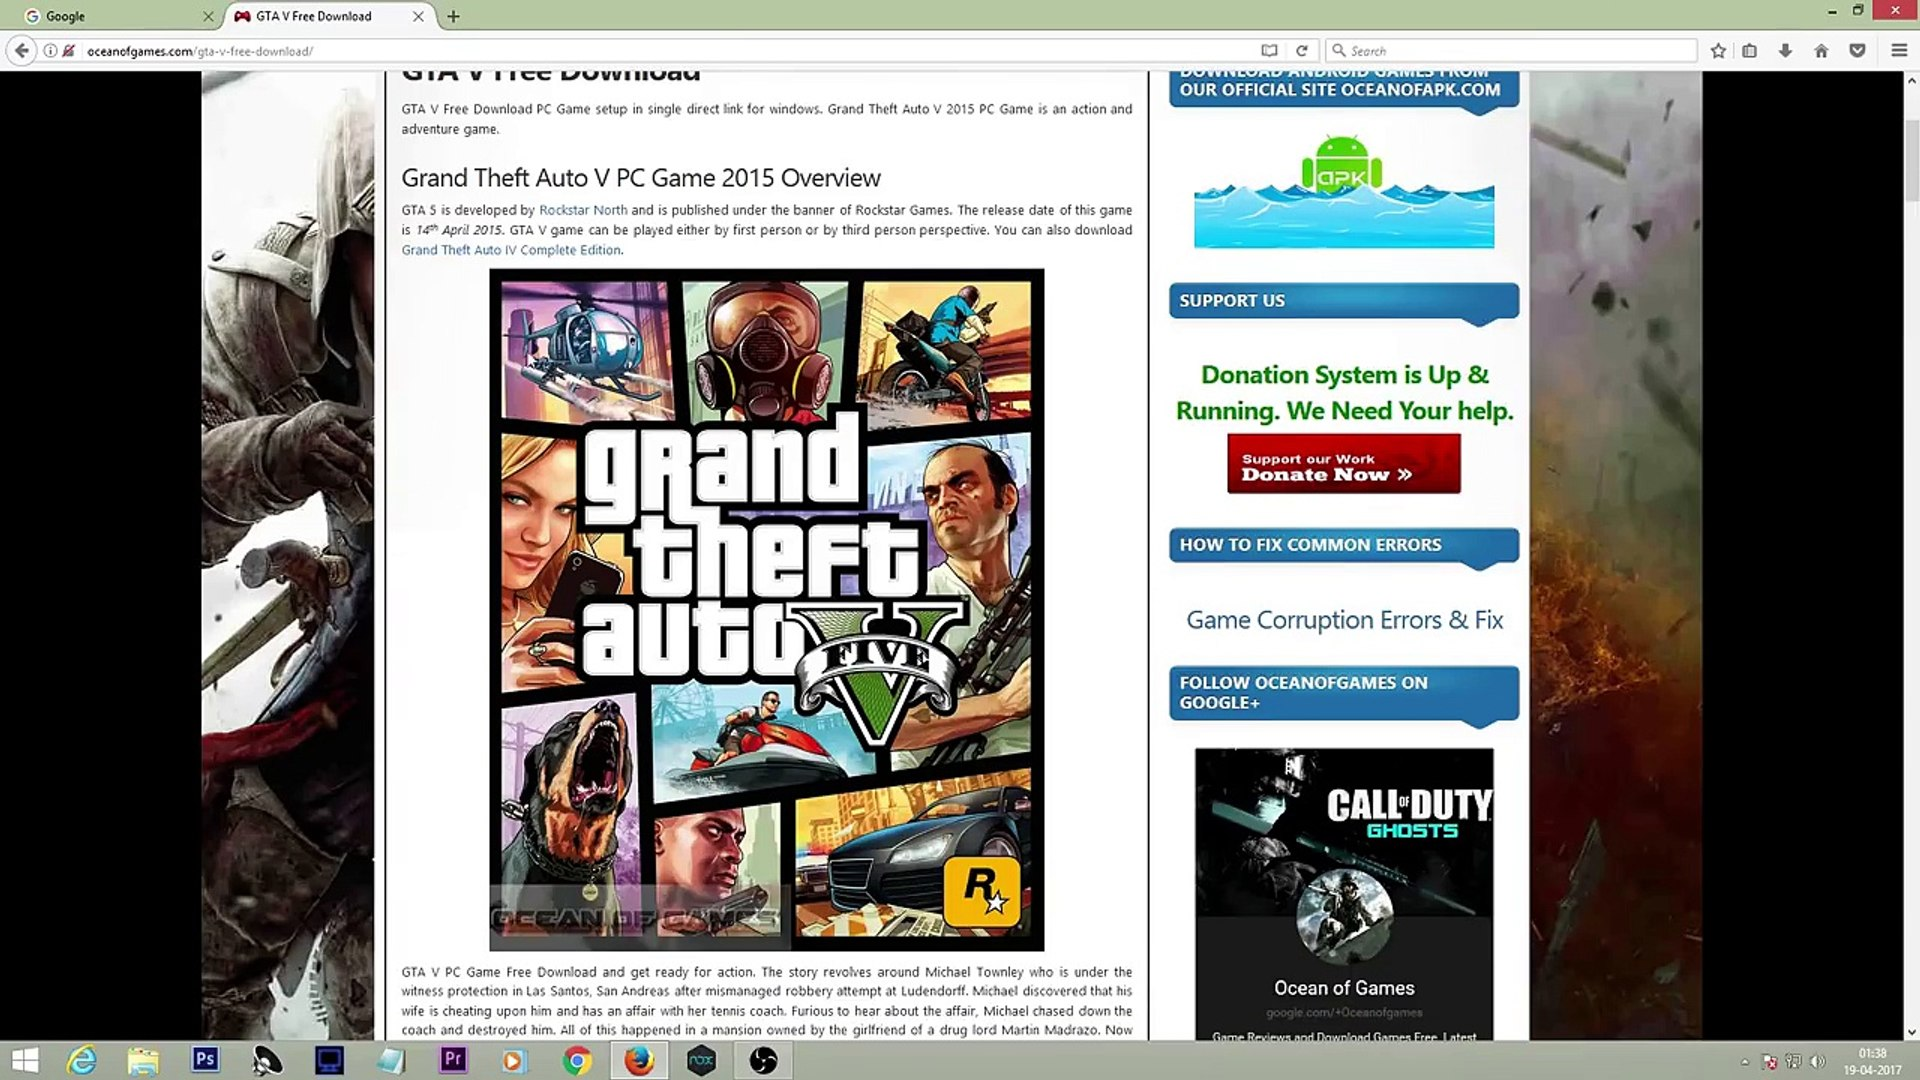 HOW TO DOWNLOAD GTA 5 FOR FREE ON PC